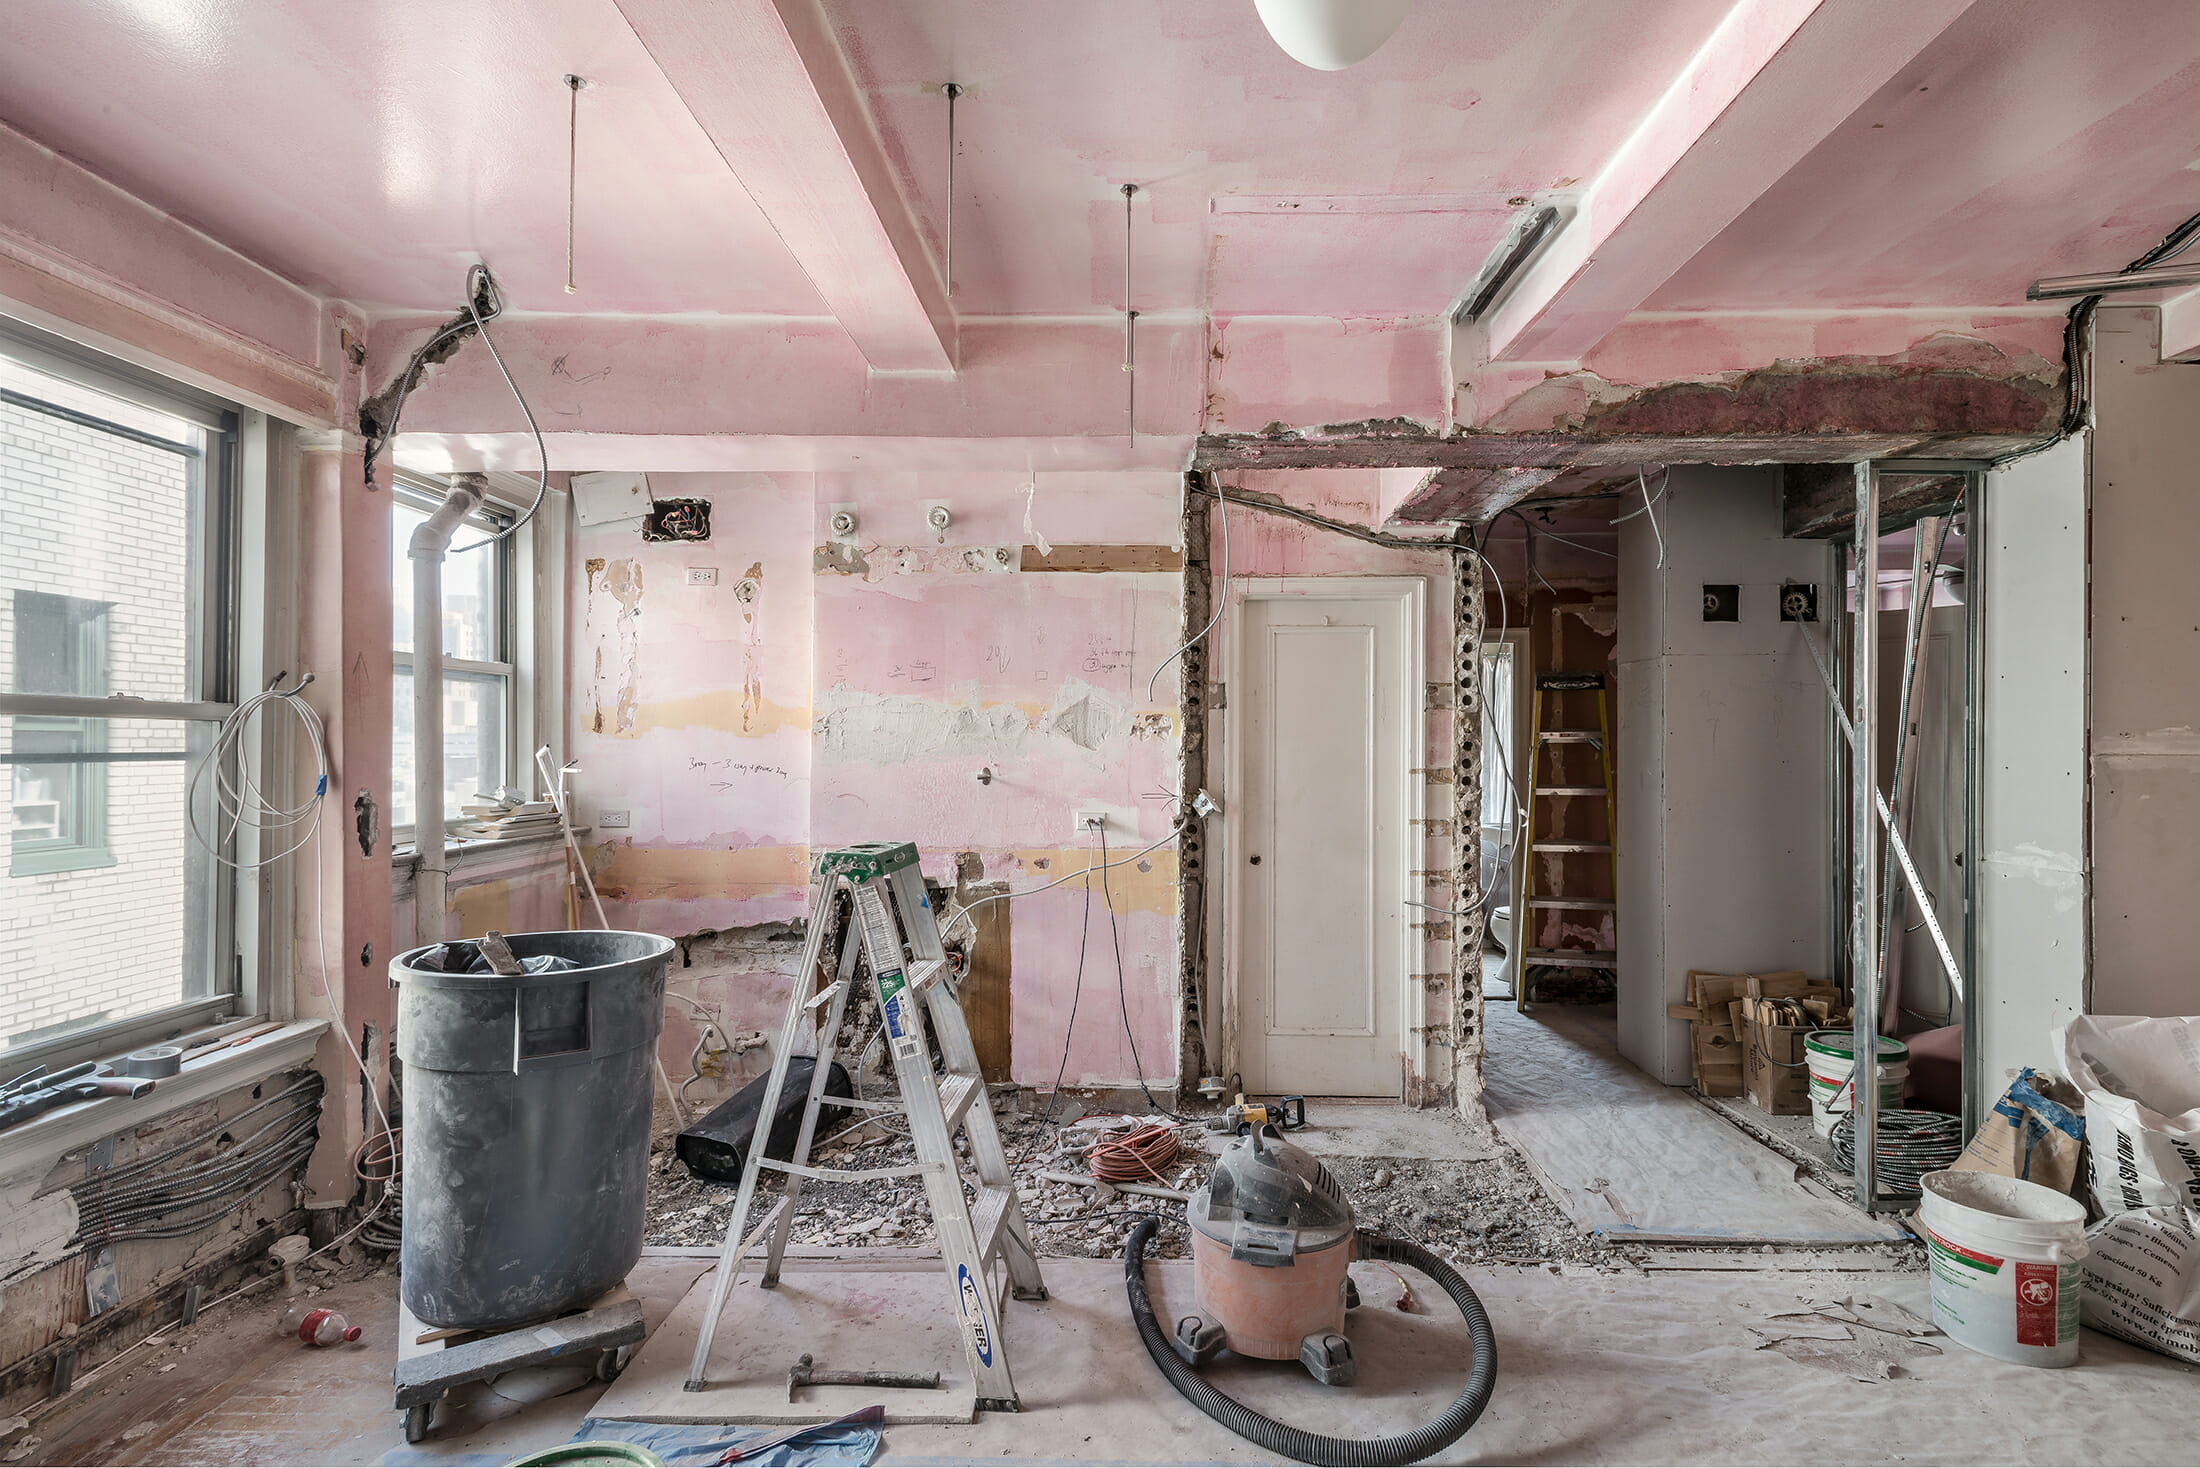 Tips for cleaning your home after a major   renovation